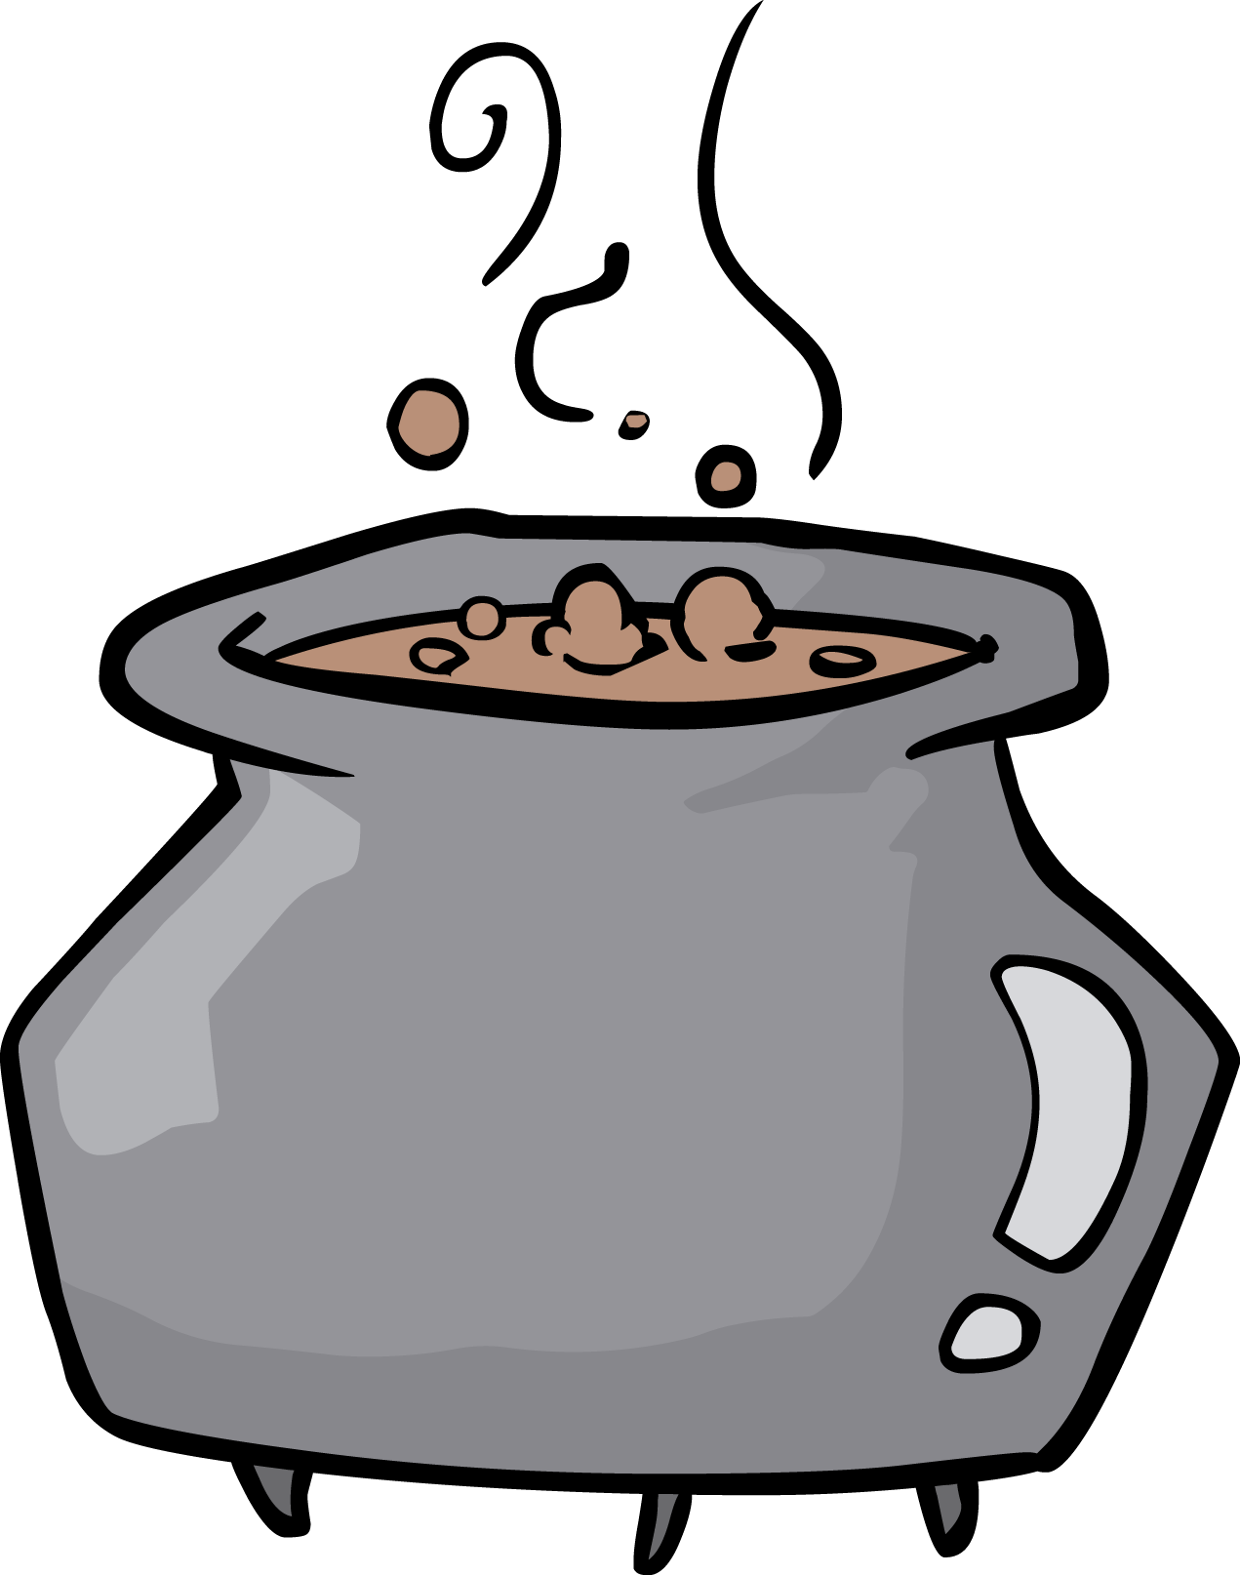 Hot clipart boiling point. Slow motion video of